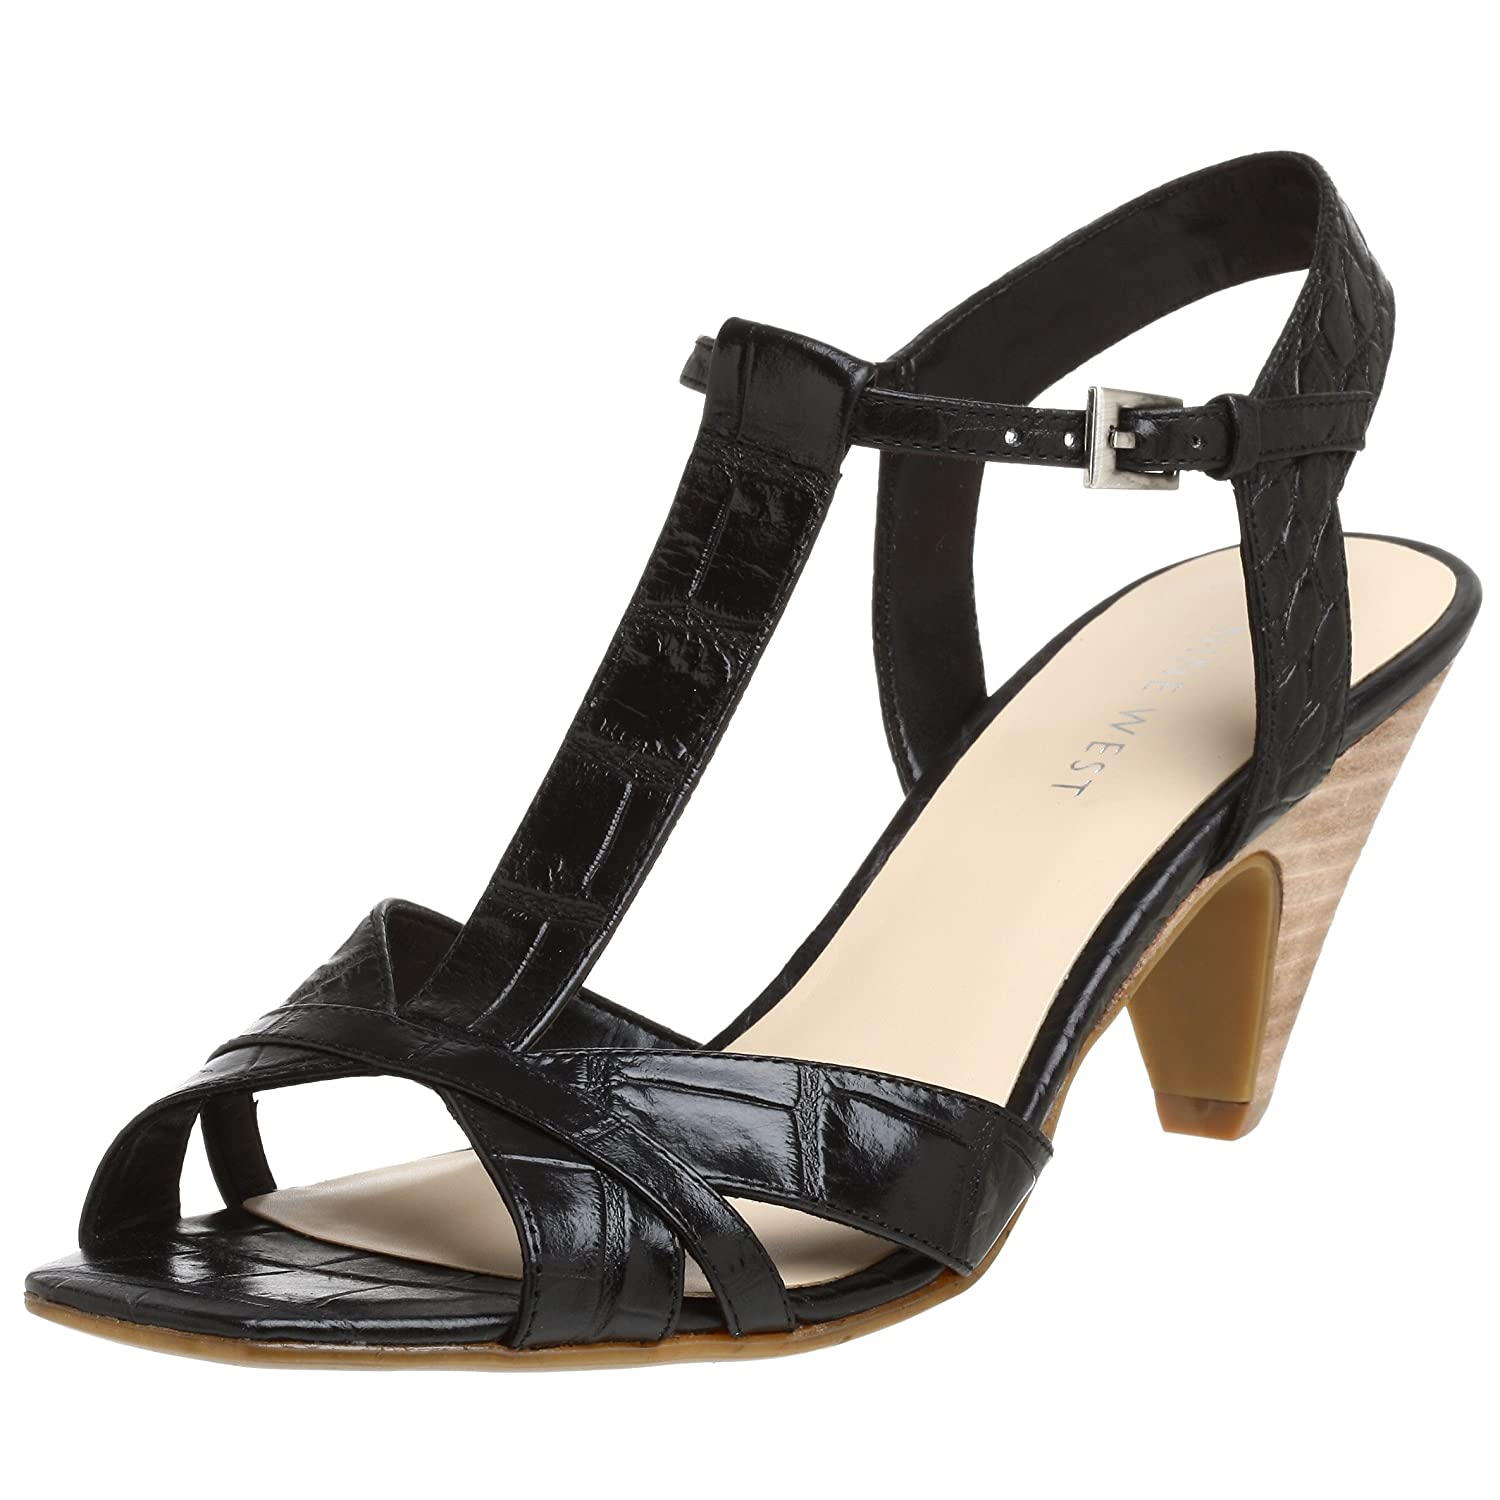 Nine West Women's Neatty T-Strap Sandal - Free Overnight Shipping & Return Shipping: Endless.com from endless.com